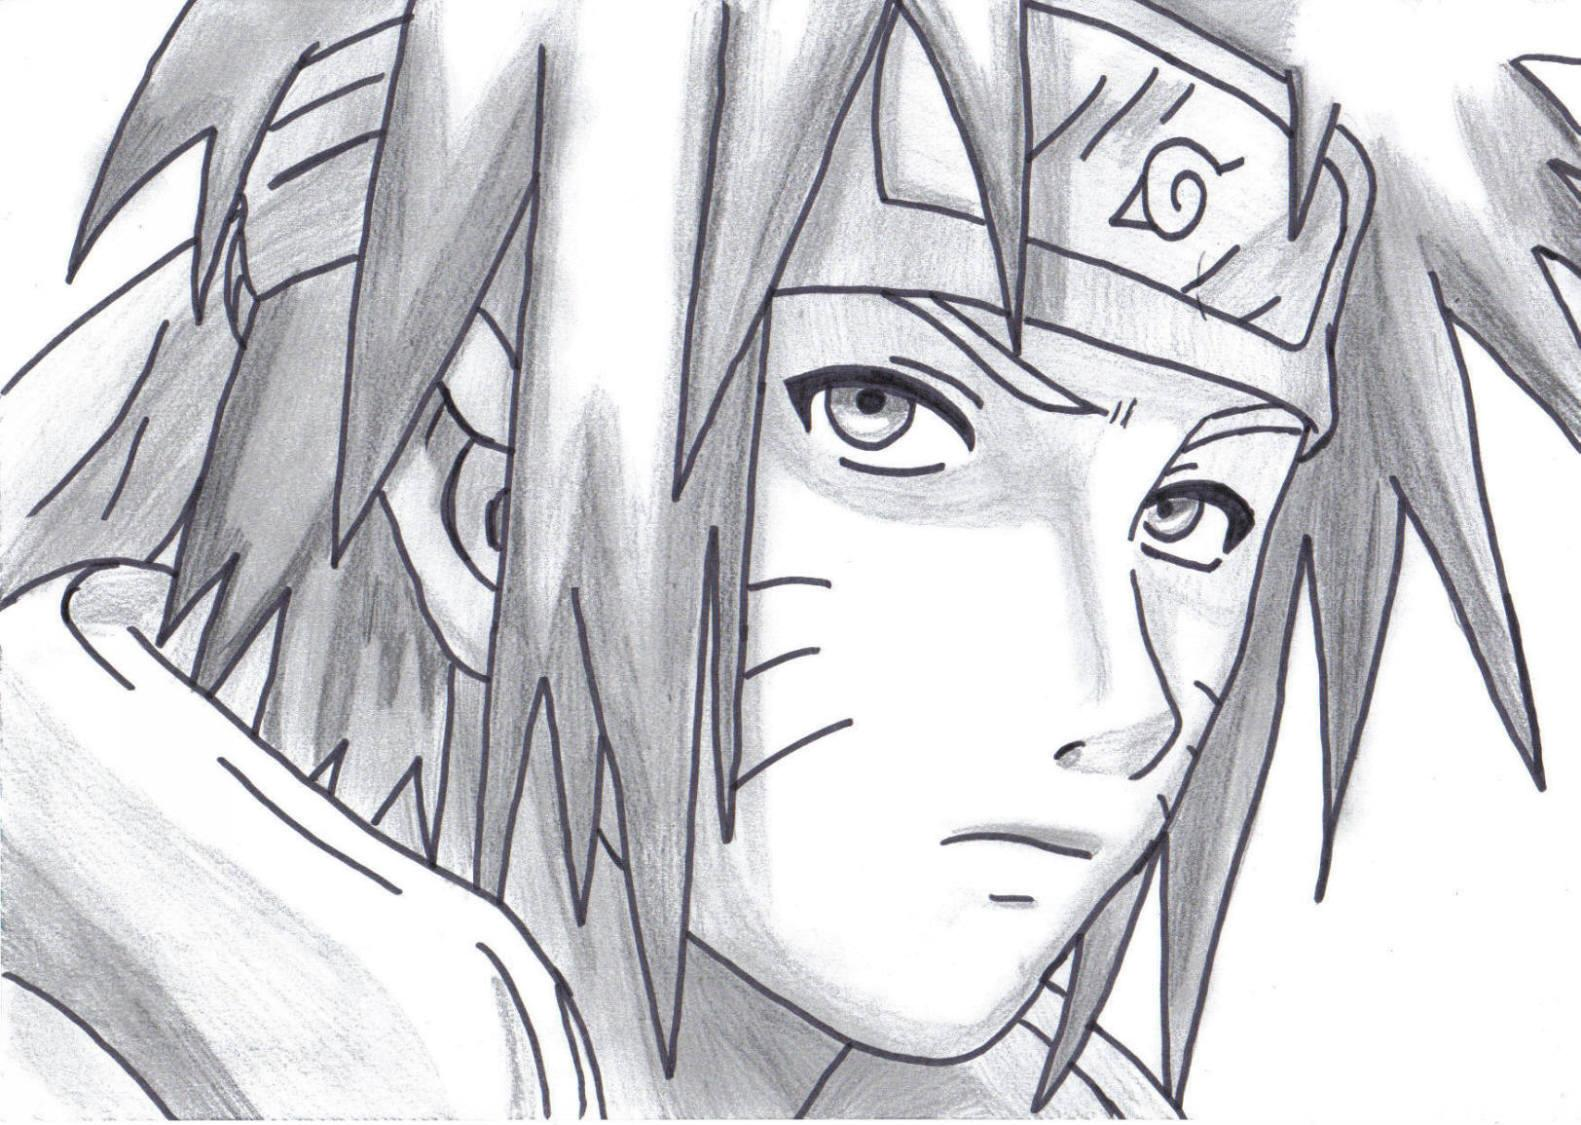 Naruto the way of naruto naruto adulte de amel020991 - Dessin naruto akkipuden ...